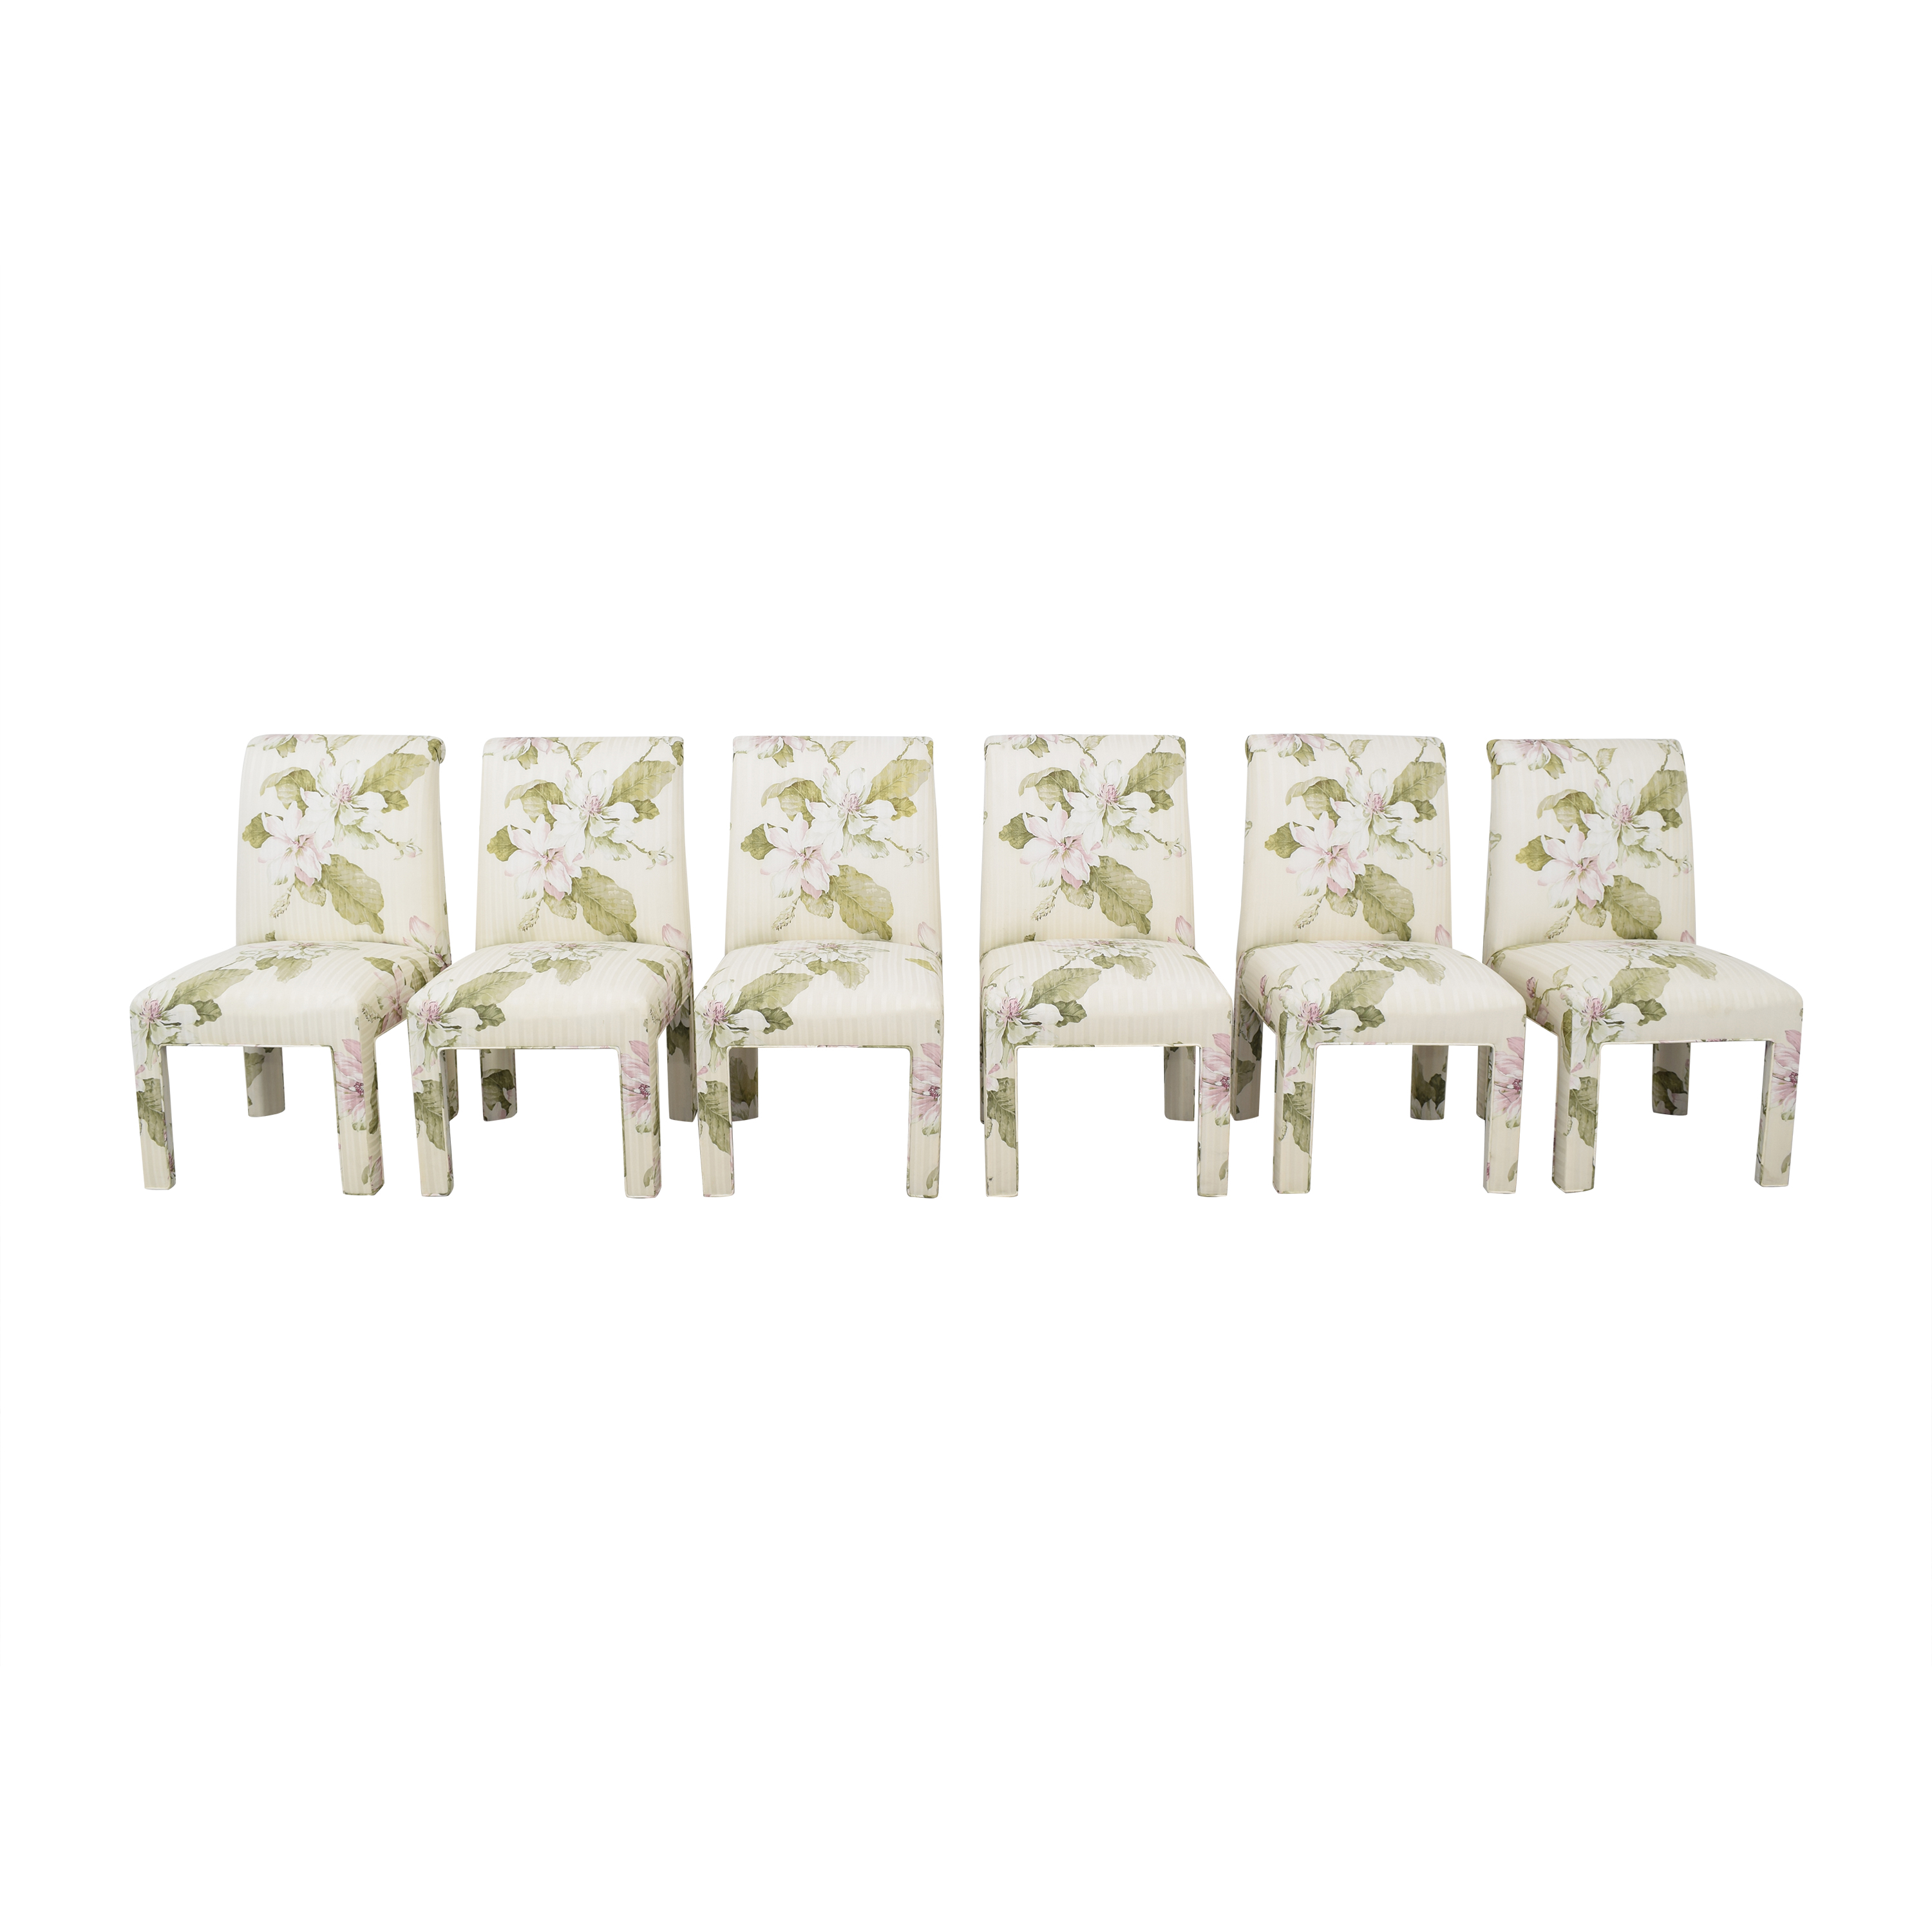 Wayfair Wayfair Floral Upholstered Dining Chairs on sale